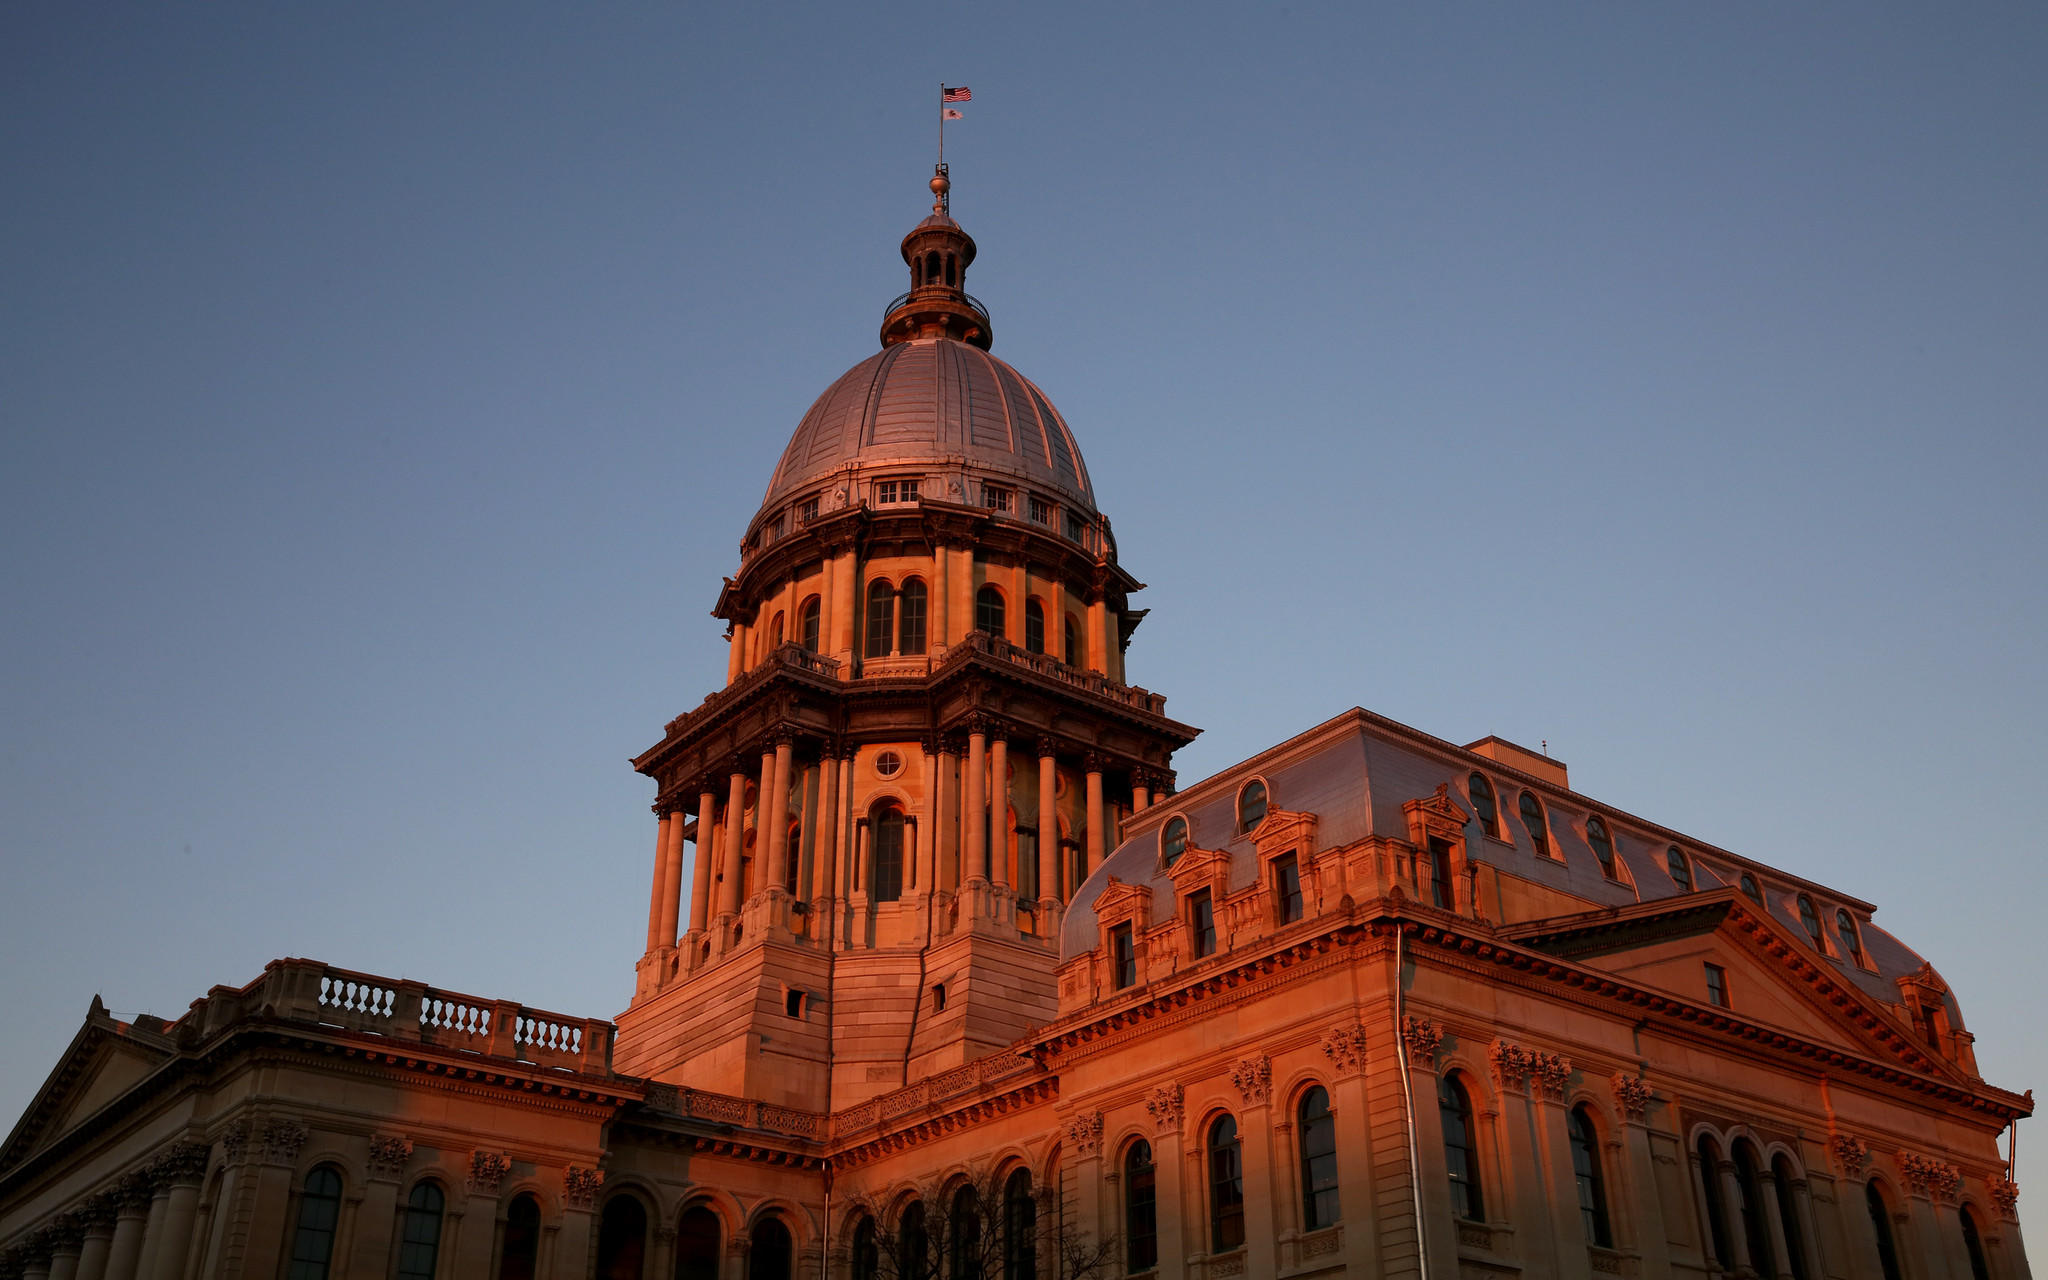 Illinois State Capitol building glows under the setting sun in Springfield, Thursday, Nov. 7, 2013. (Antonio Perez/Chicago Tribune) B583317093Z.1 ....OUTSIDE TRIBUNE CO.- NO MAGS, NO SALES, NO INTERNET, NO TV, CHICAGO OUT, NO DIGITAL MANIPULATION...